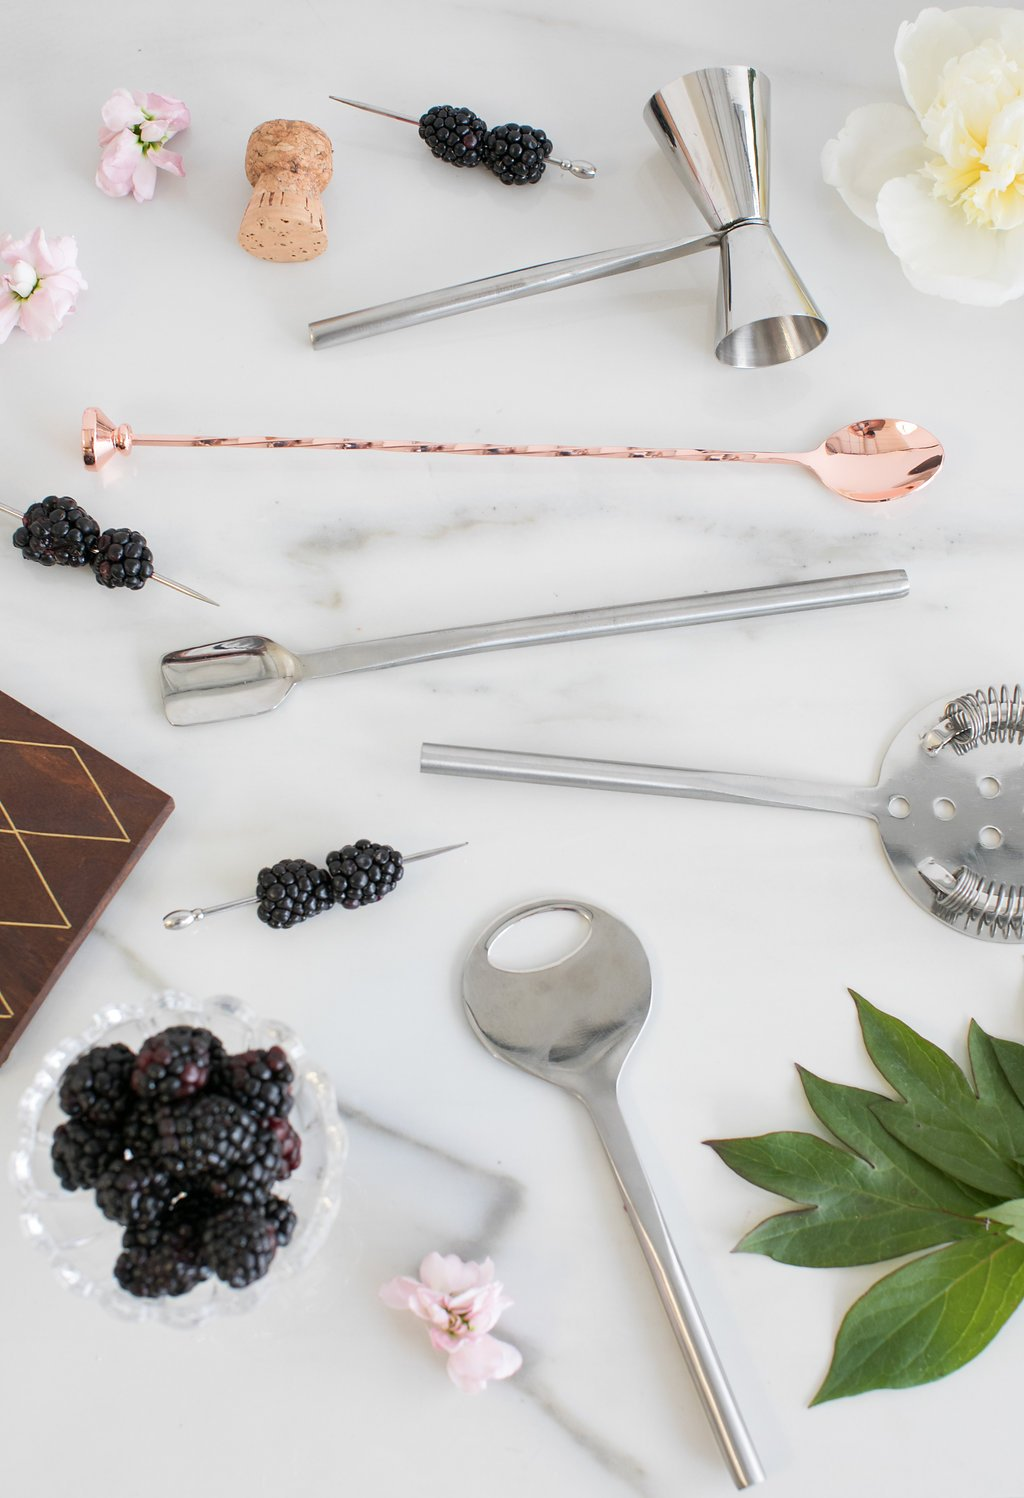 Bar tools laid out on marble slab